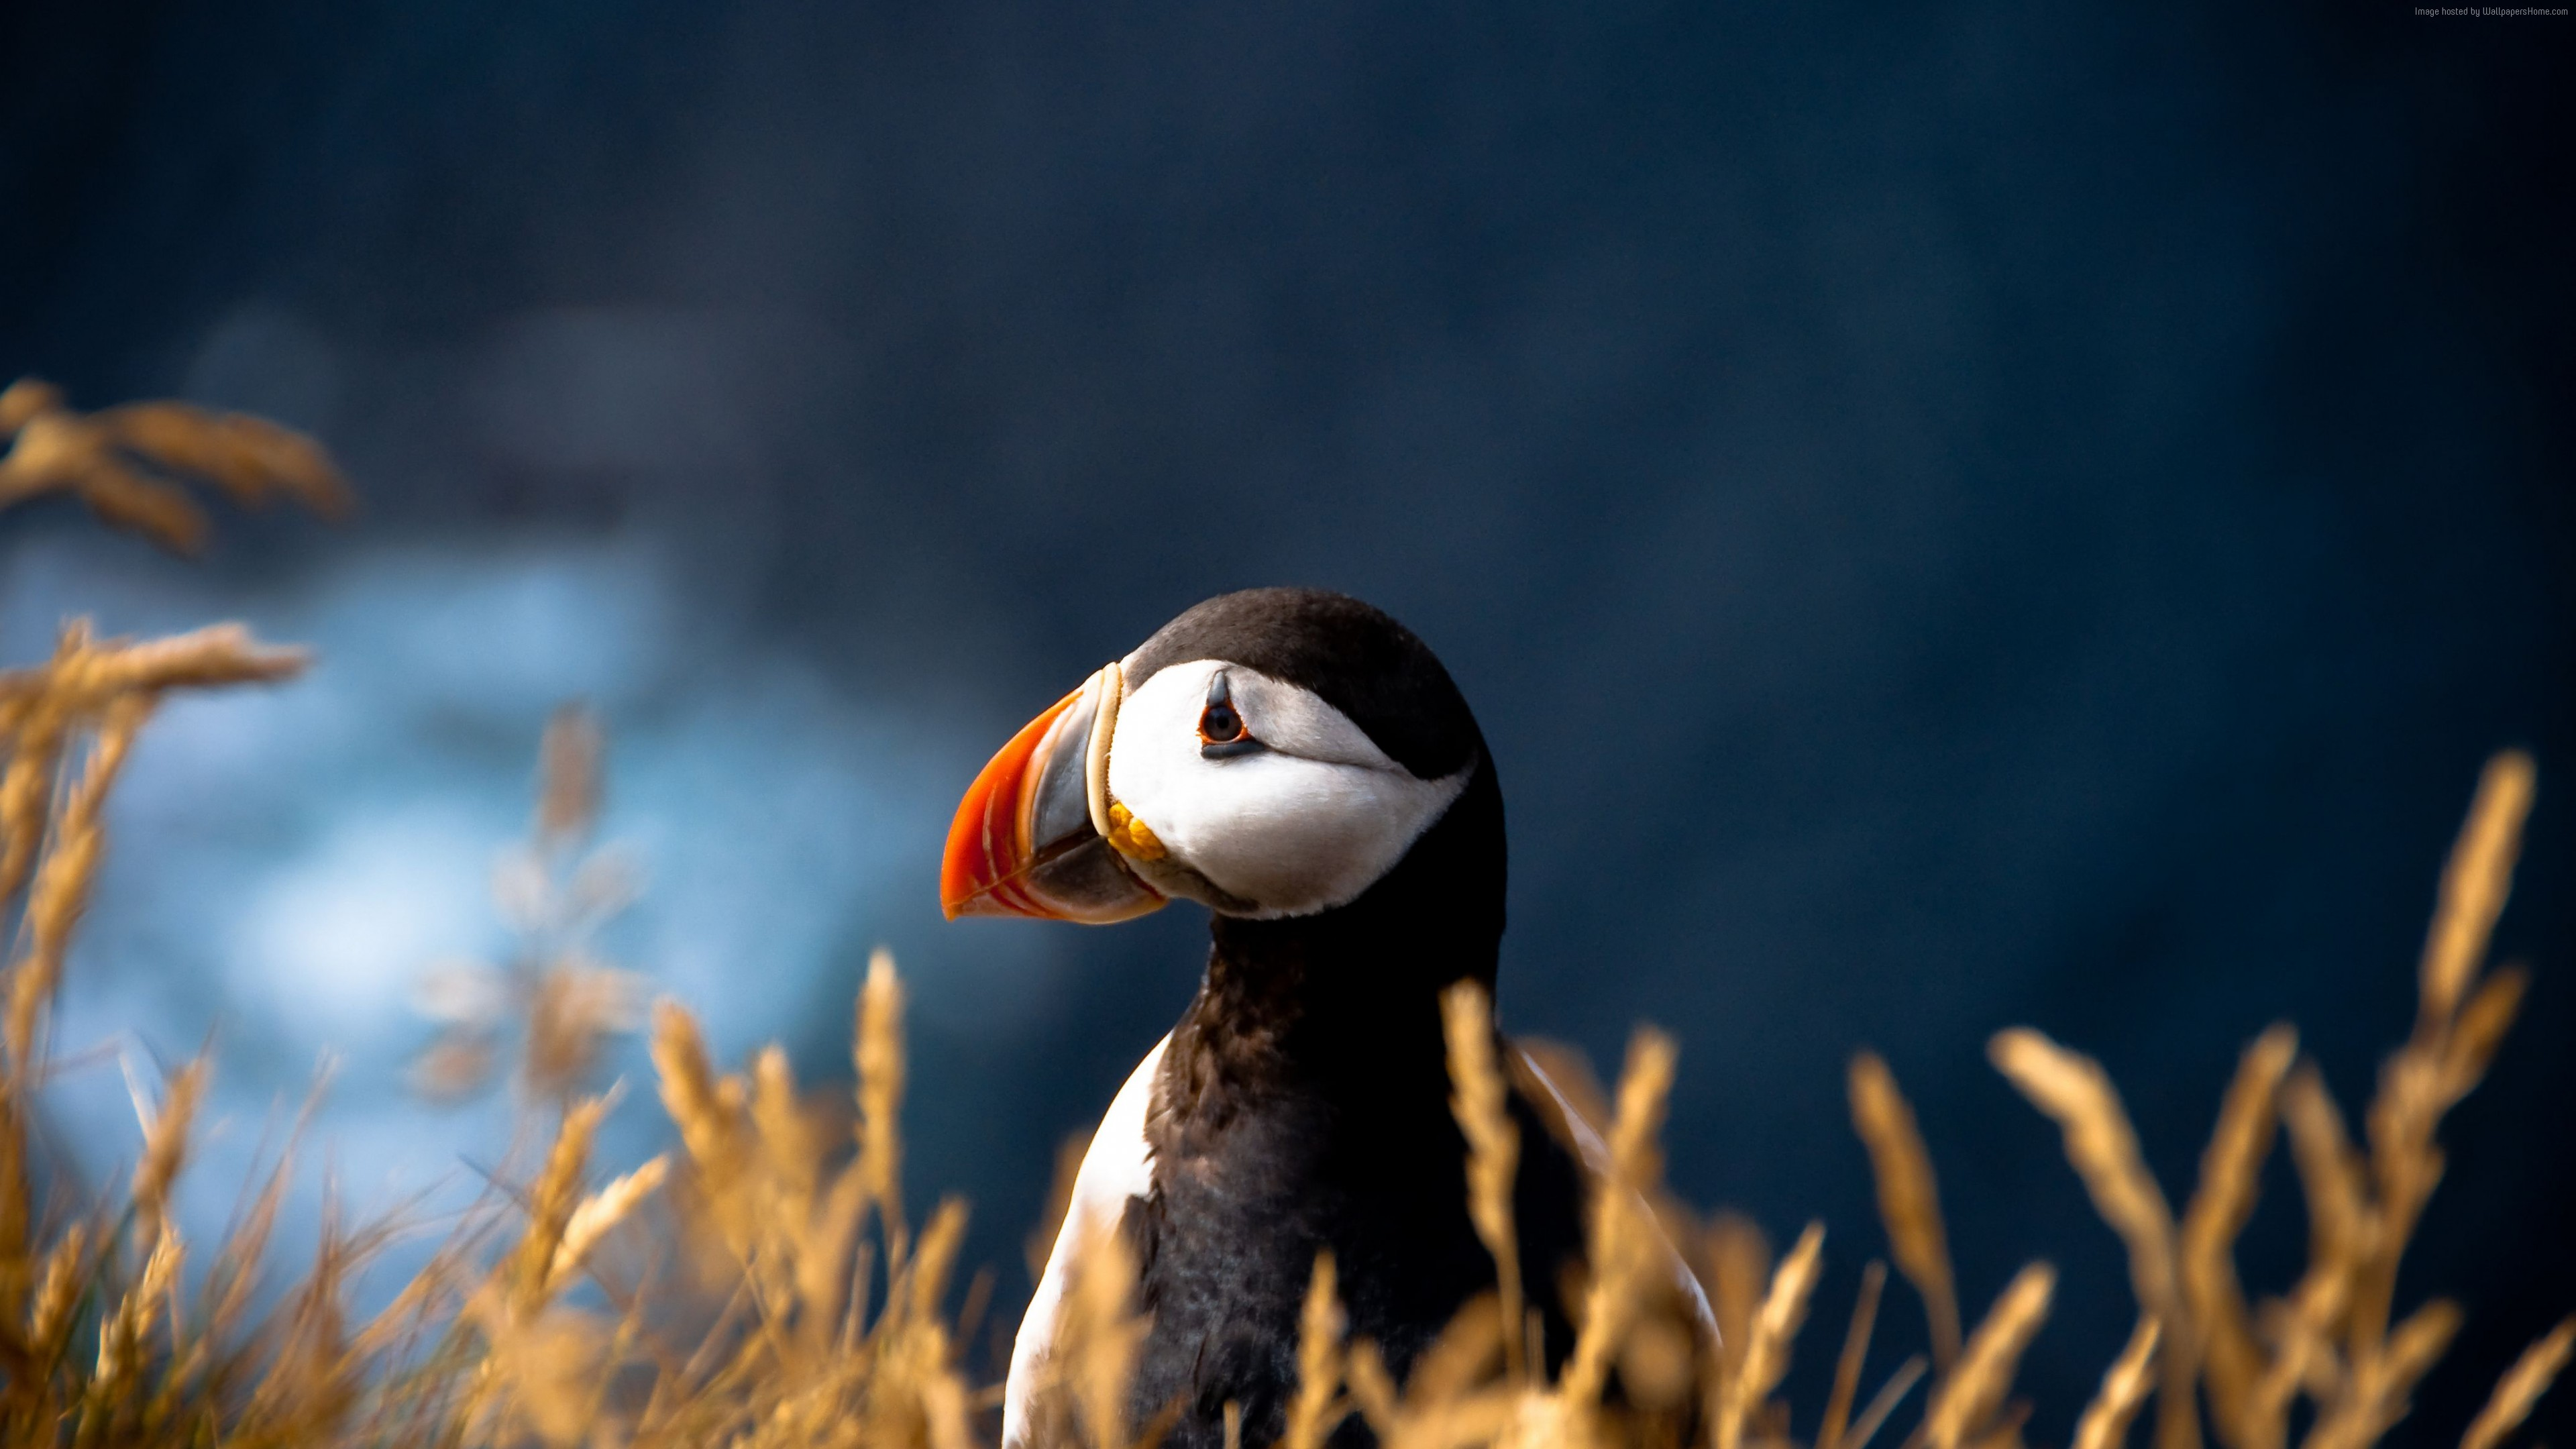 Wallpaper Atlantic puffin, 5k, 4k wallpaper, Atlantic Ocean, British Isles, bird, colorful, nature, animal, Animals